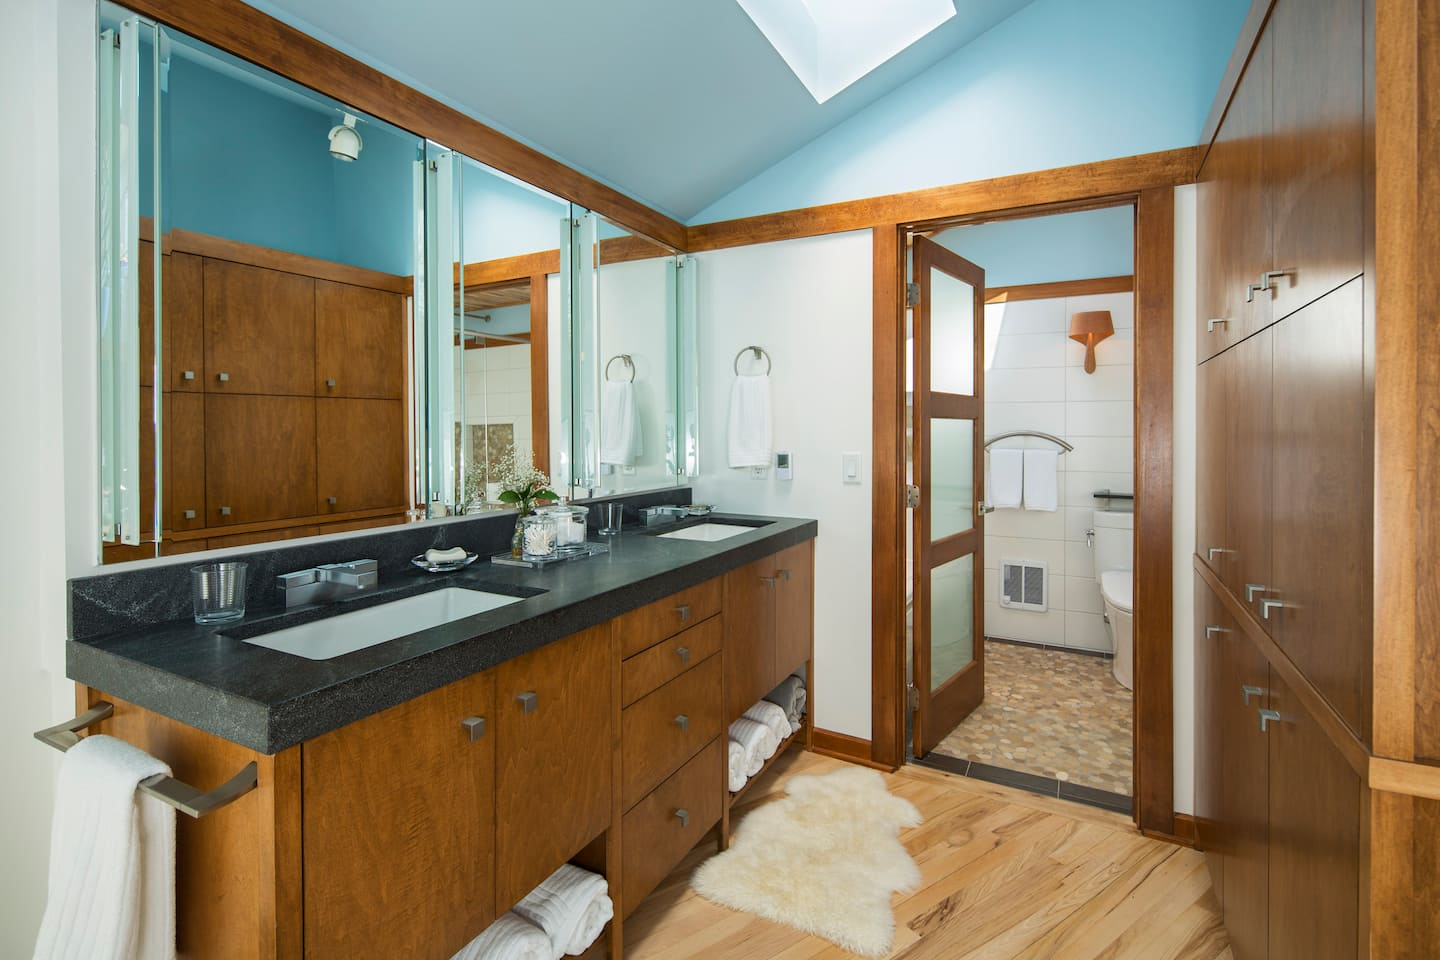 Cost to build a bathroom